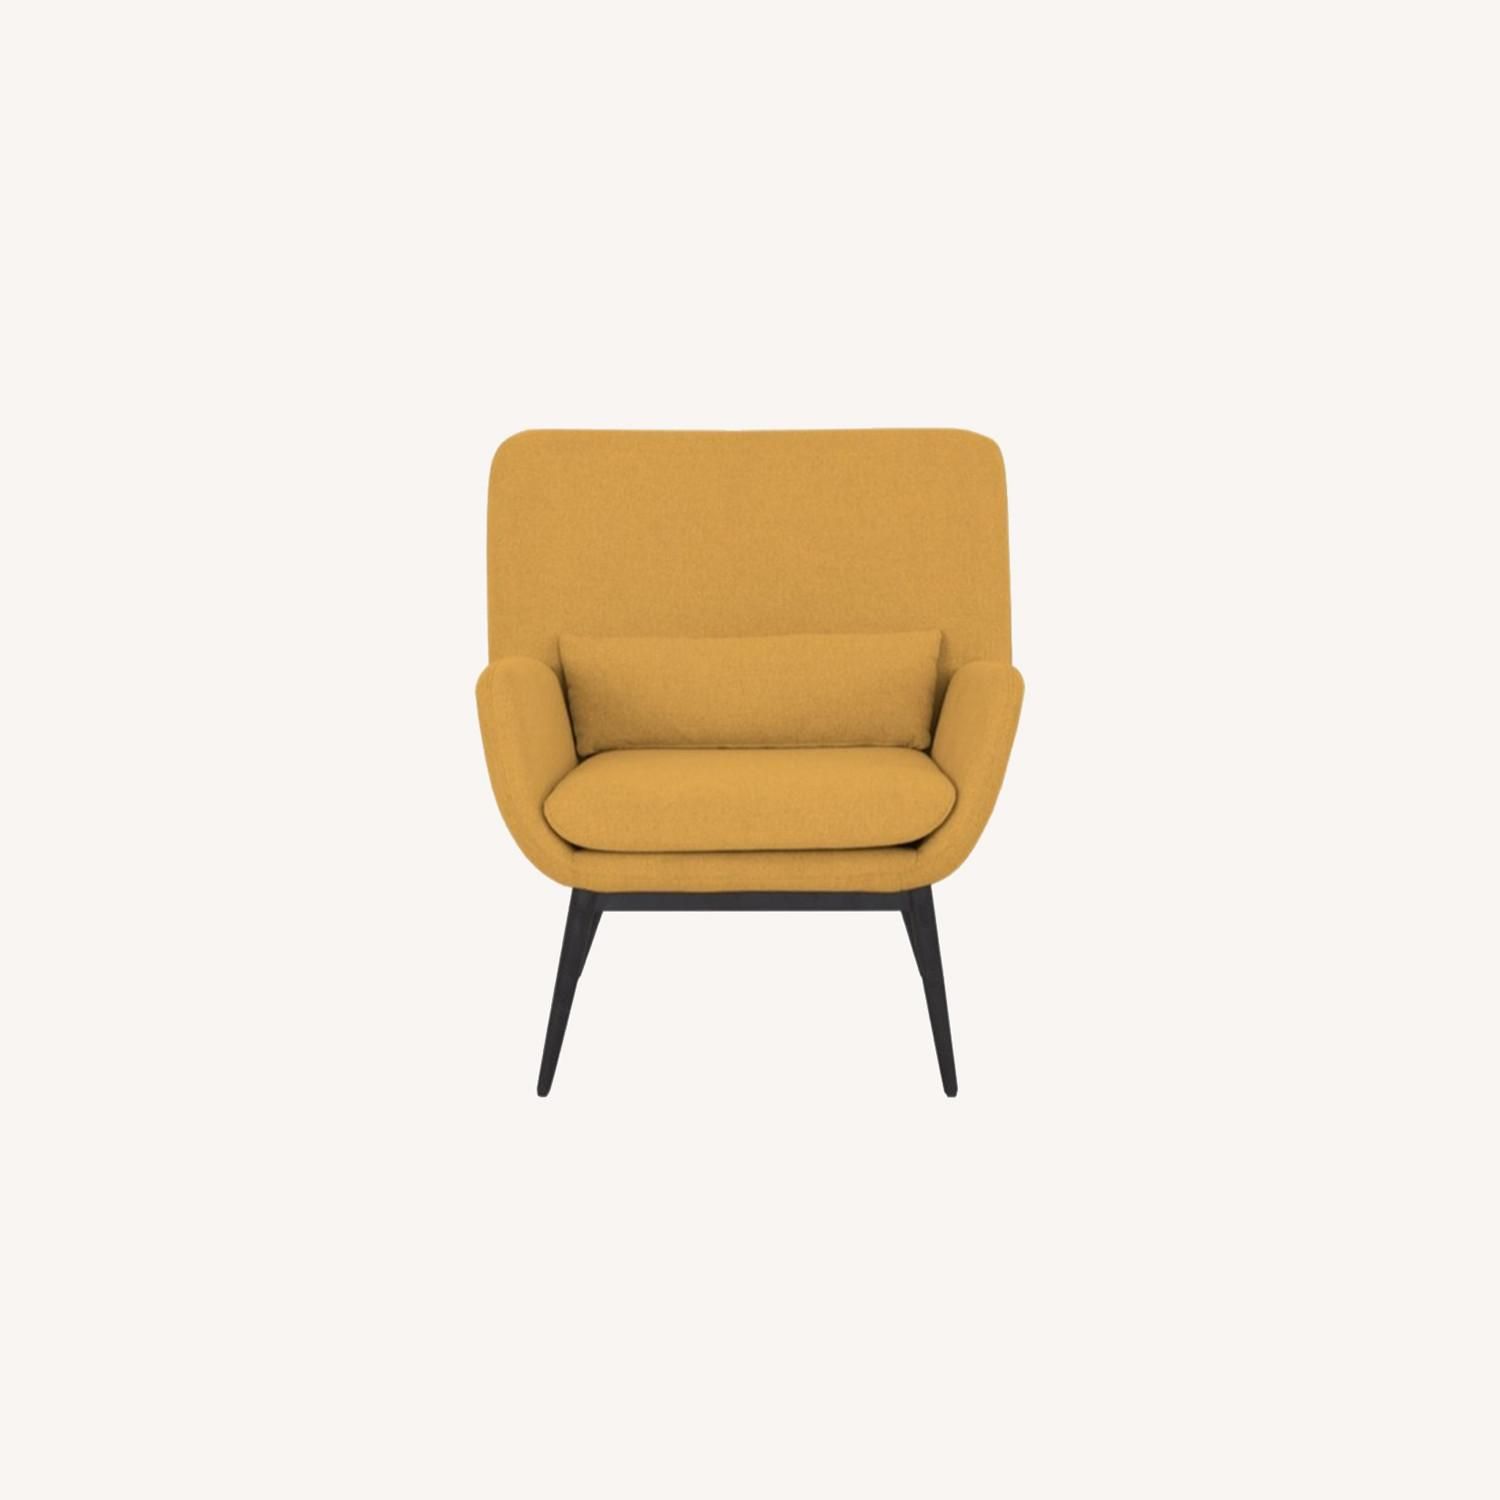 Castlery Cammy Armchair, Canary Yellow - image-0